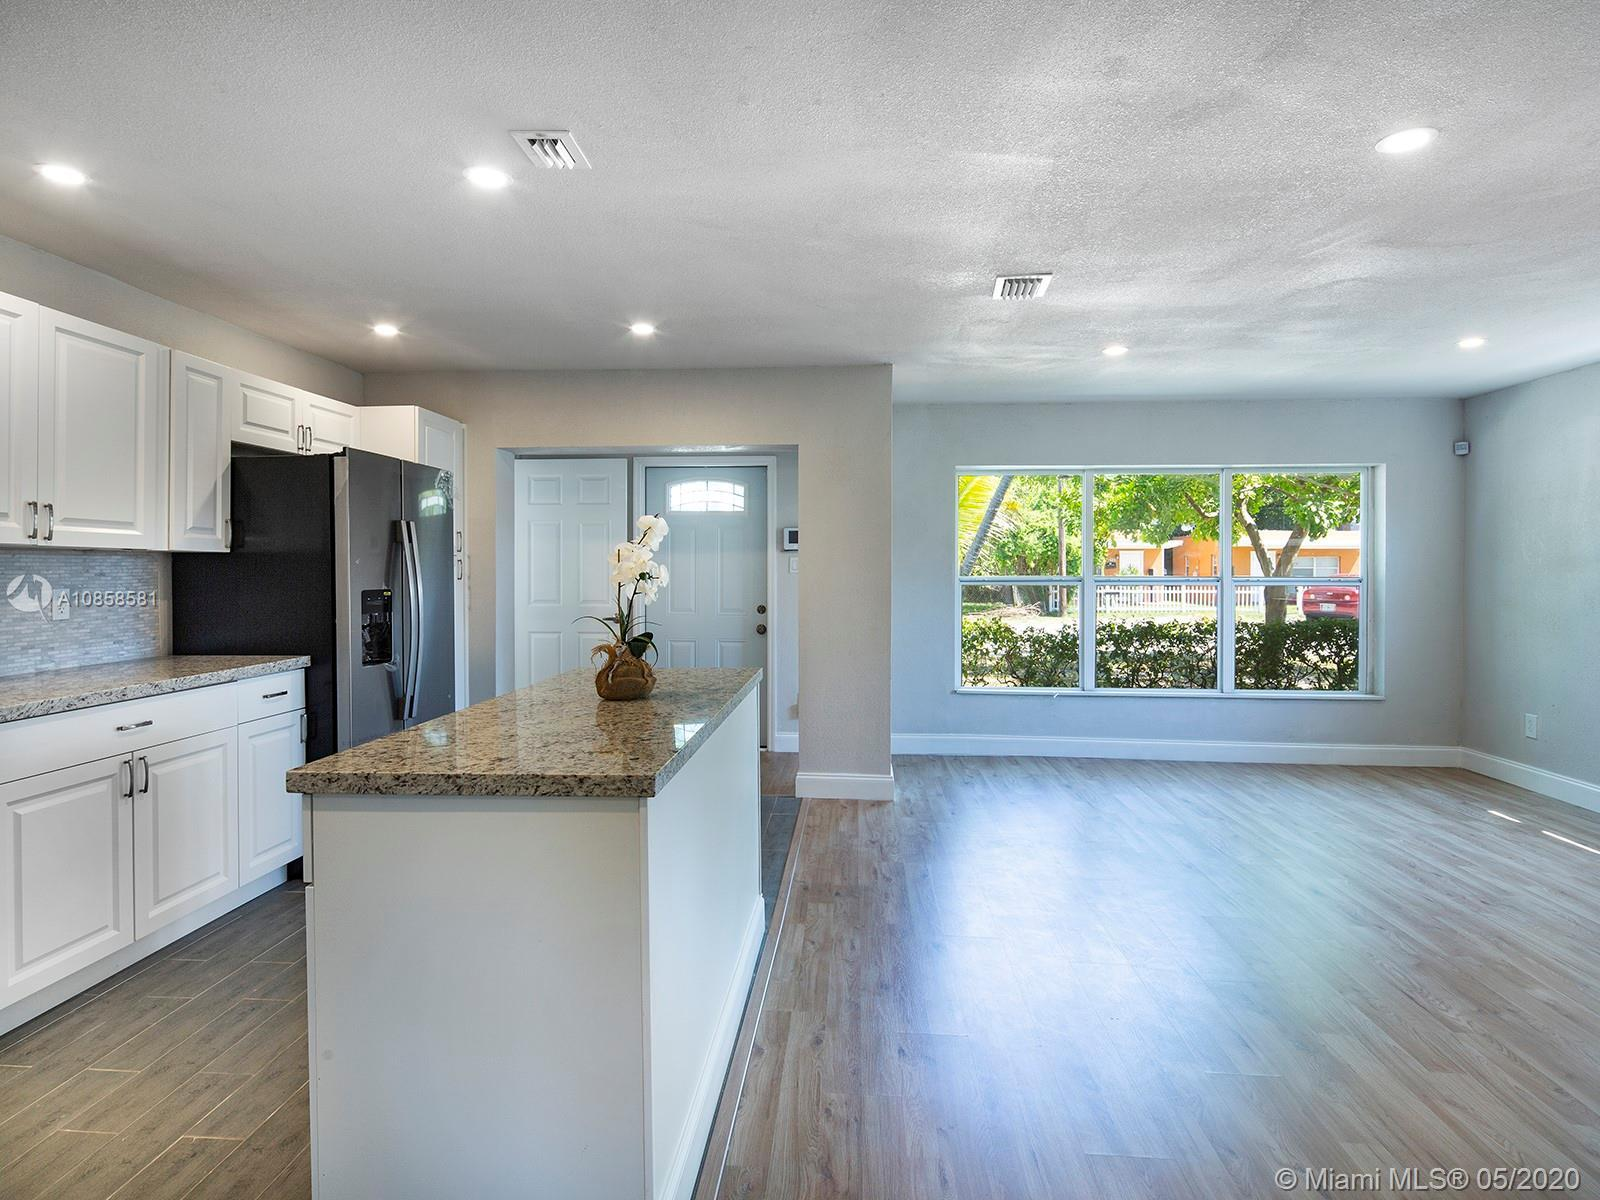 Freshly painted and completely renovated 3 bedroom 2 bath home. The house has a white kitchen with g